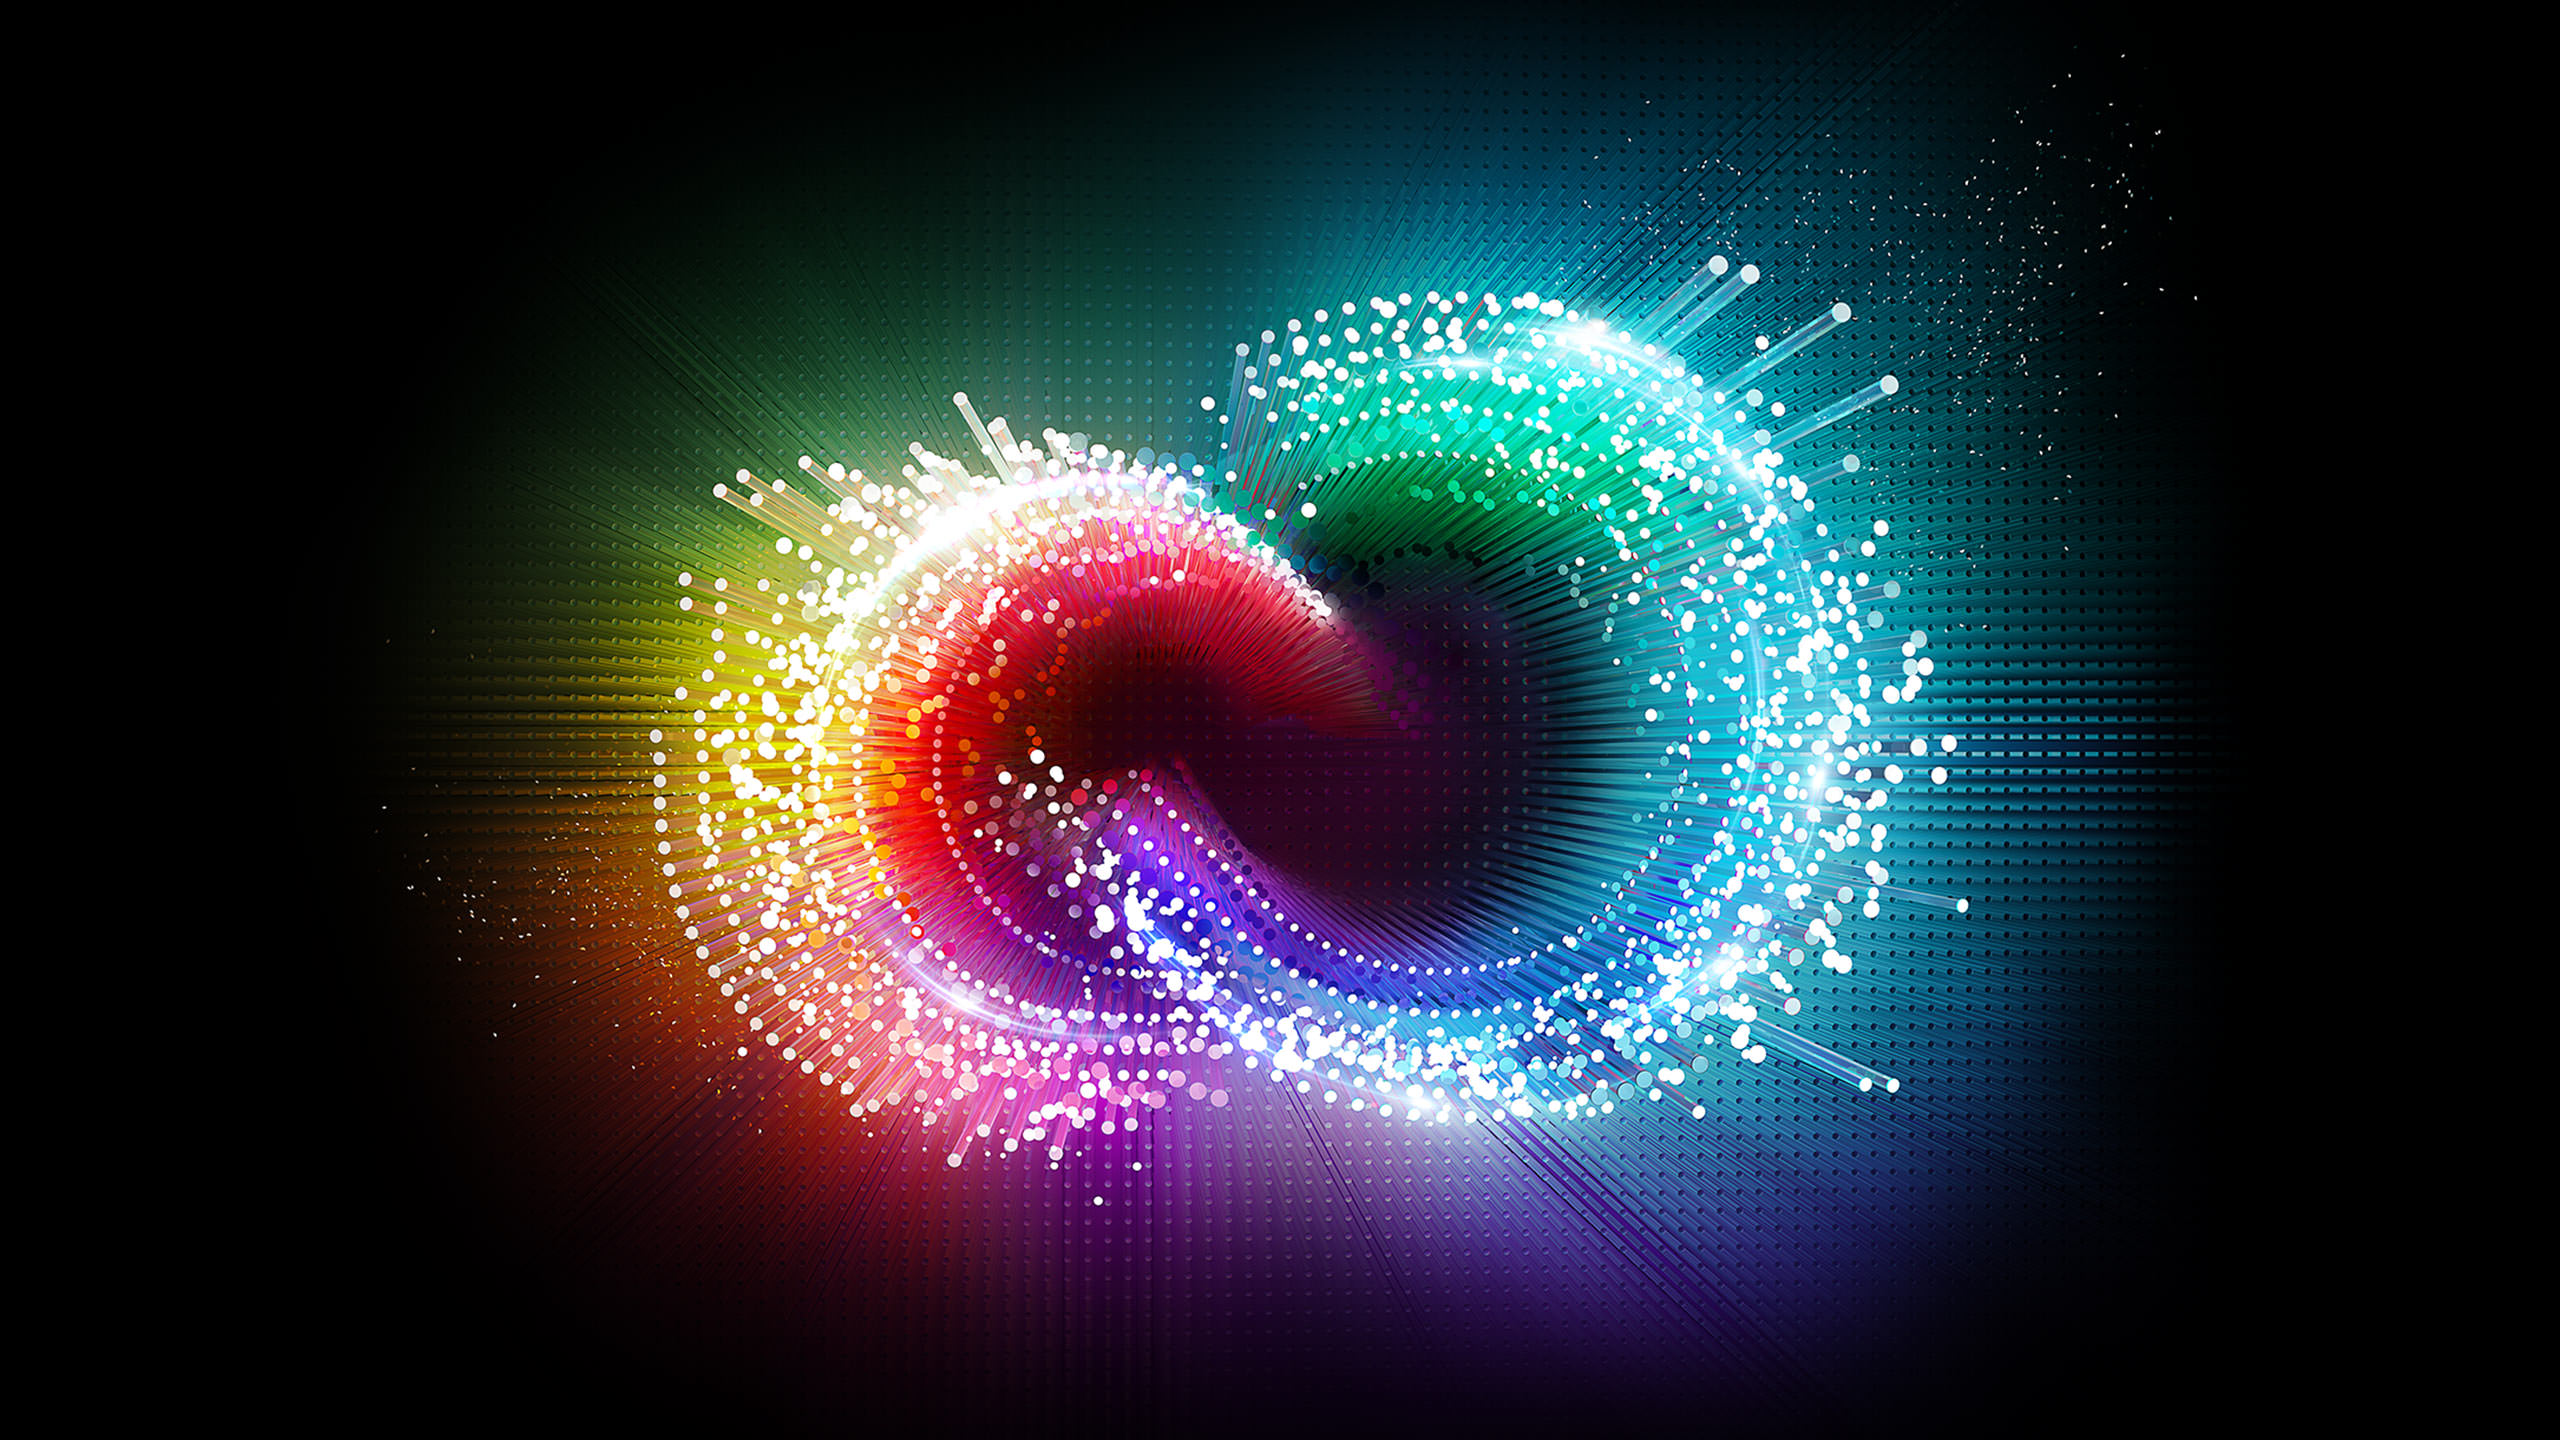 Adobe Creative Cloud Identity 2014